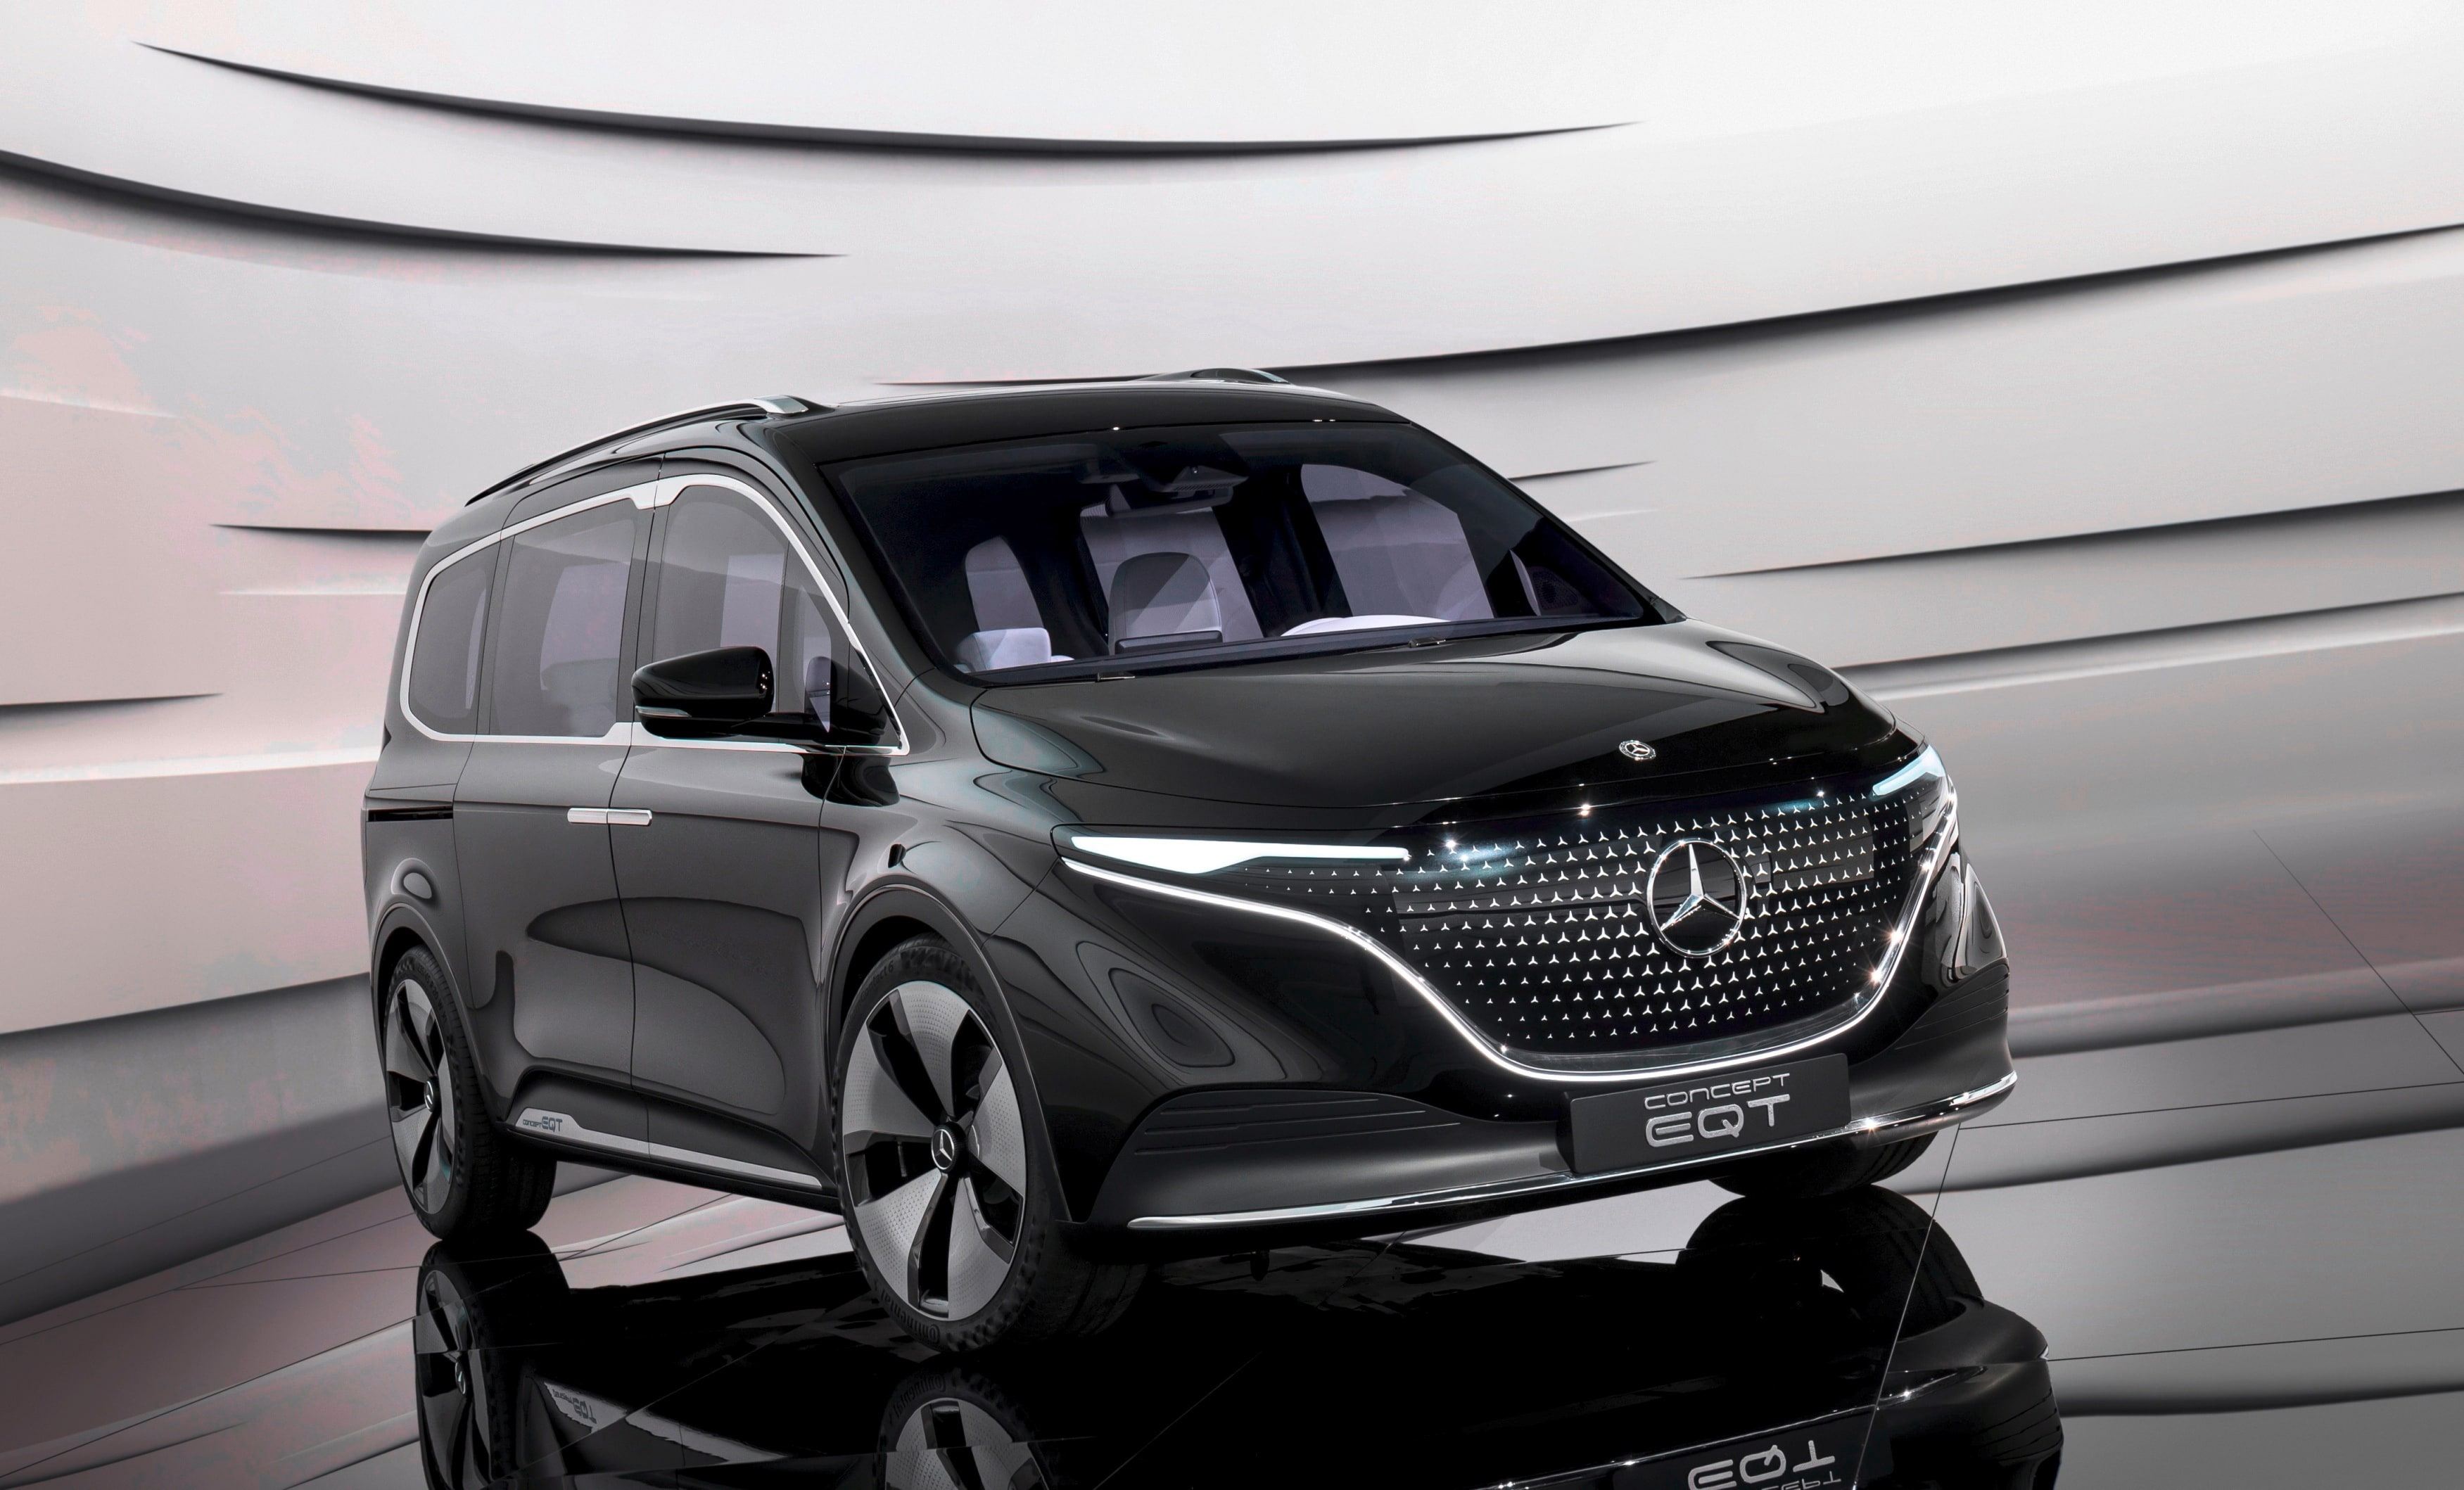 The Mercedes EQT Concept is likely to get a 102 PS electric motor with a 44 kWh battery pack. It is claimed that the EQT can cover around 265 kilometers on single charge.